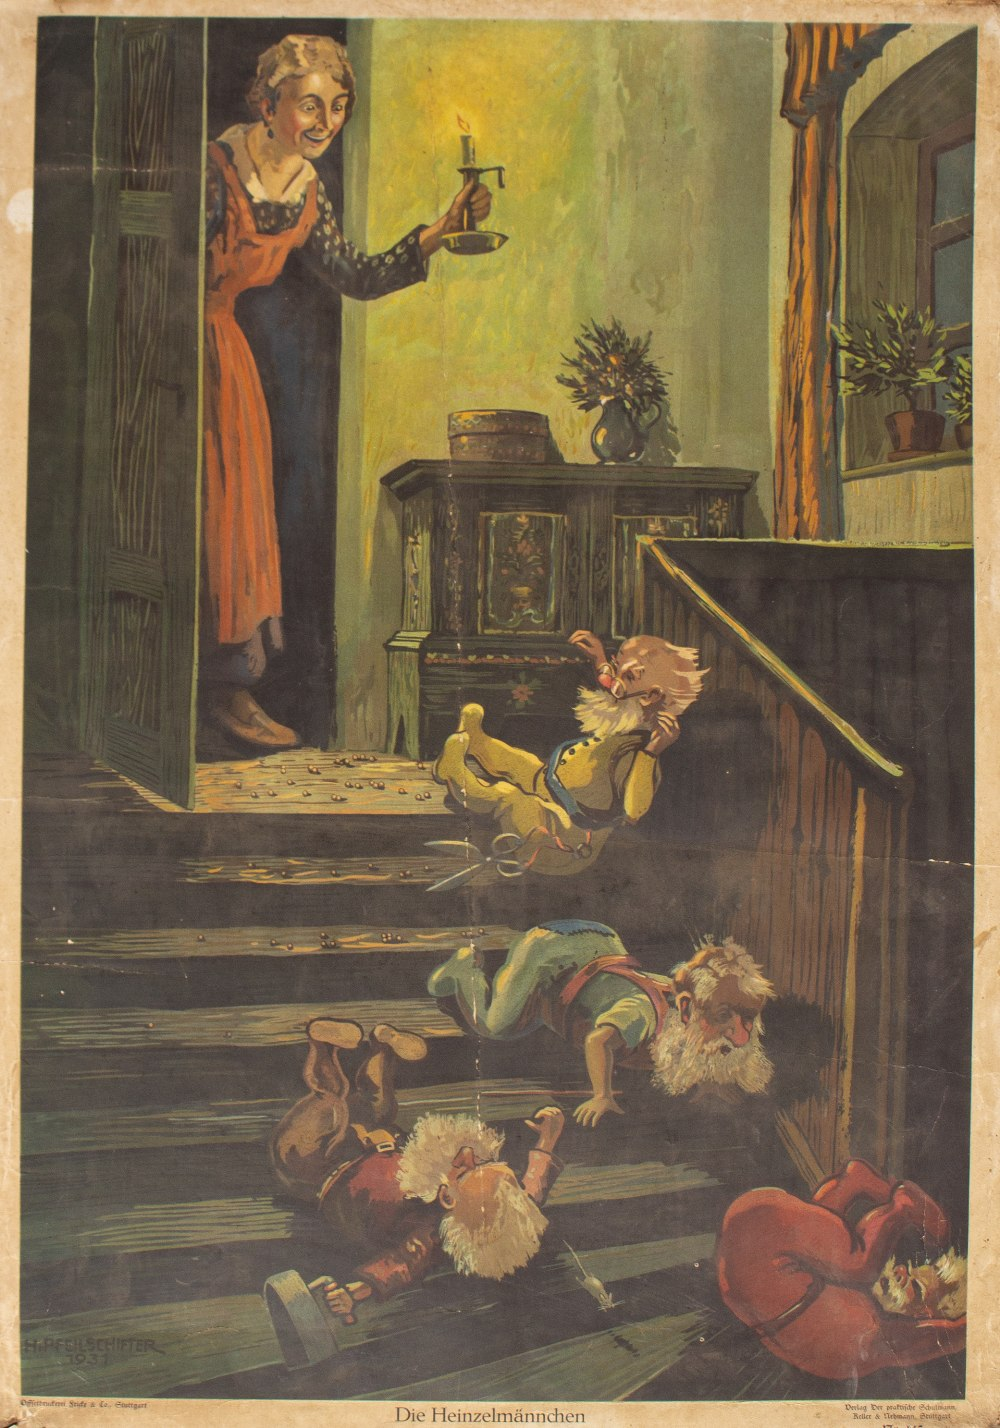 Lot 55 - AN EARLY 20TH CENTURY CONTINENTAL EDUCATIONAL STORY POSTER after an original picture by H